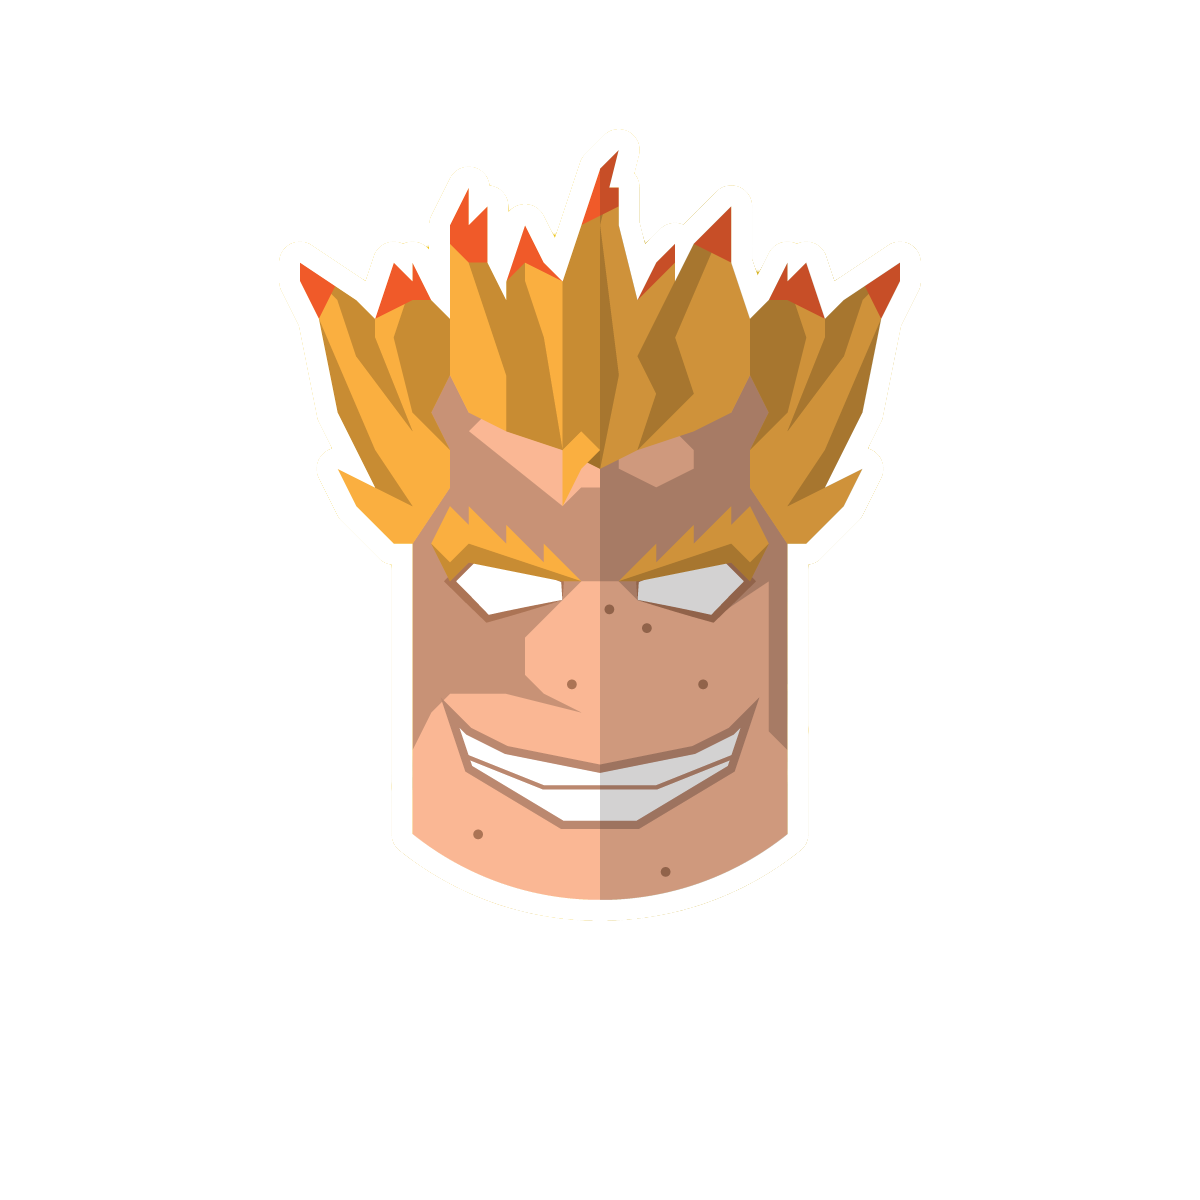 The Heroes Of Overwatch Sticker Pack messages sticker-6